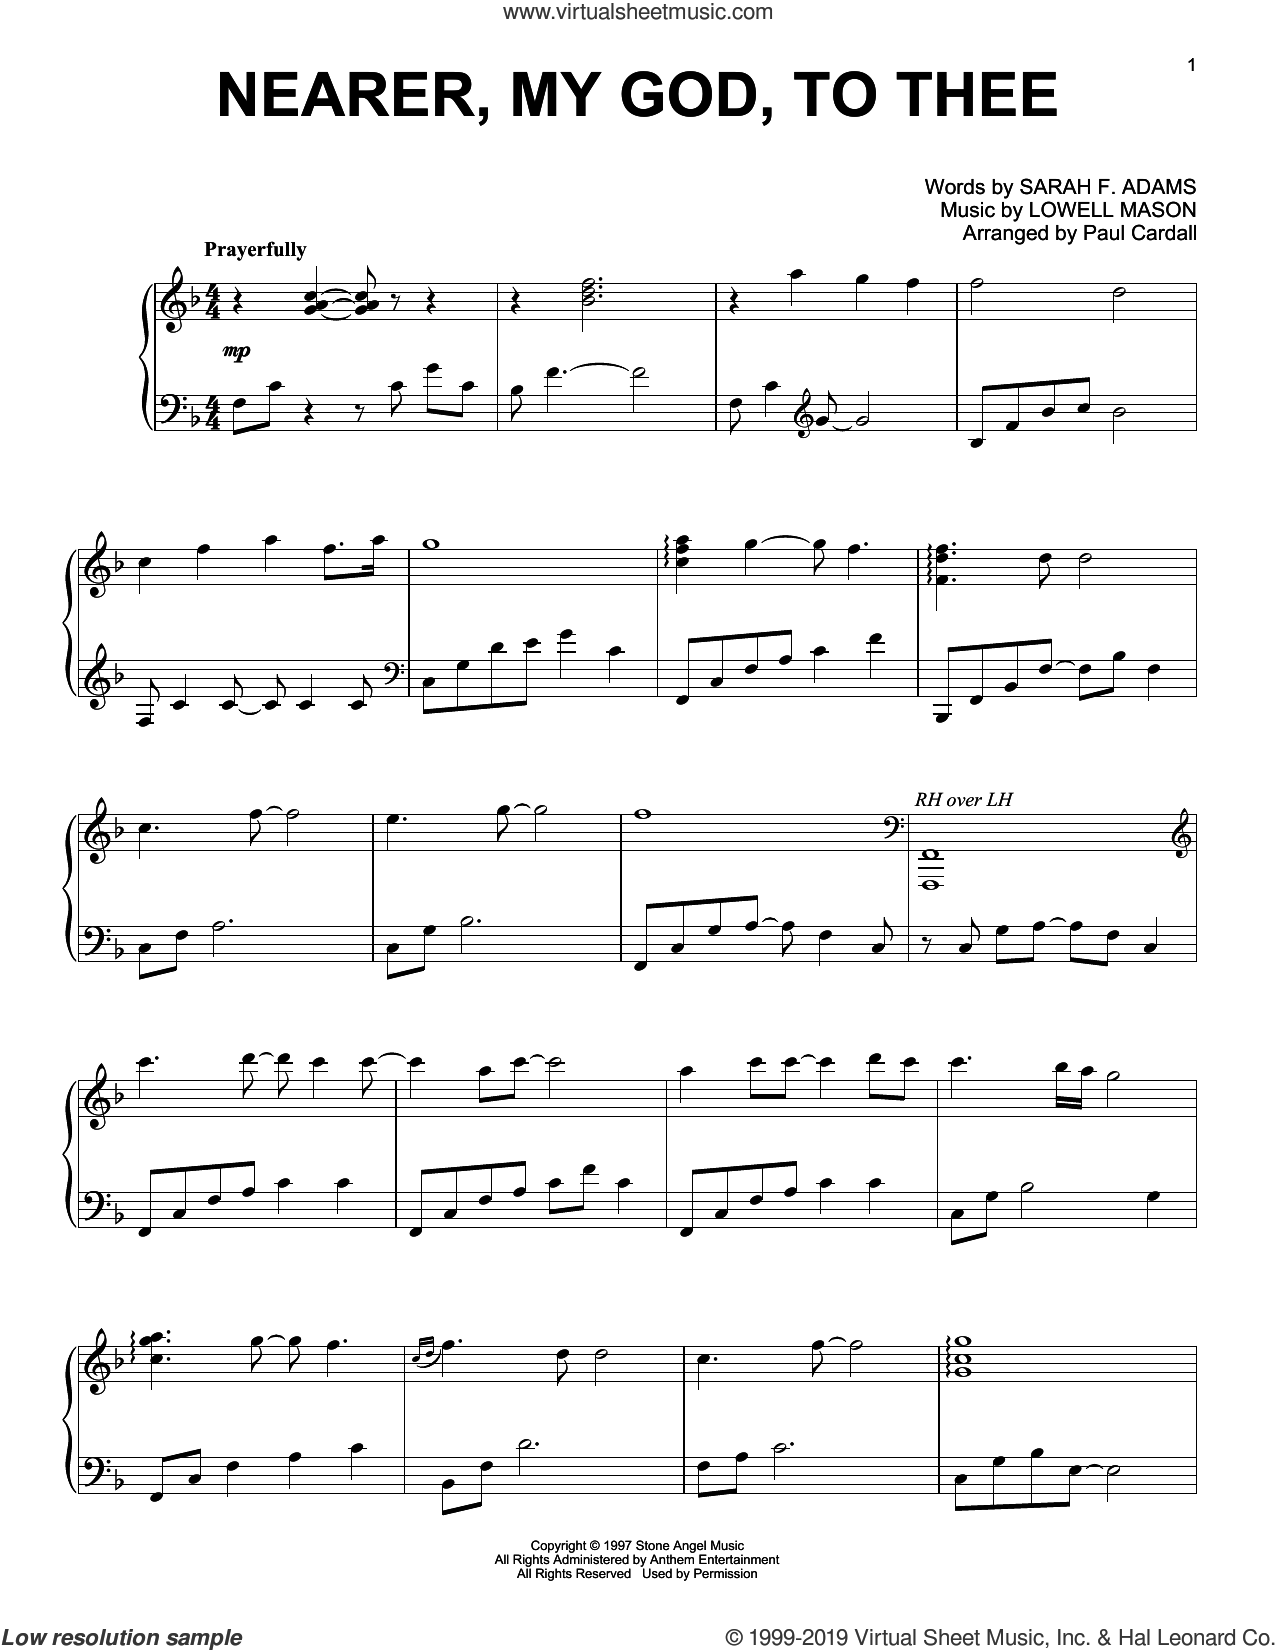 Nearer, My God, To Thee (arr. Paul Cardall) sheet music for piano solo by Lowell Mason, Paul Cardall and Sarah F. Adams, intermediate skill level